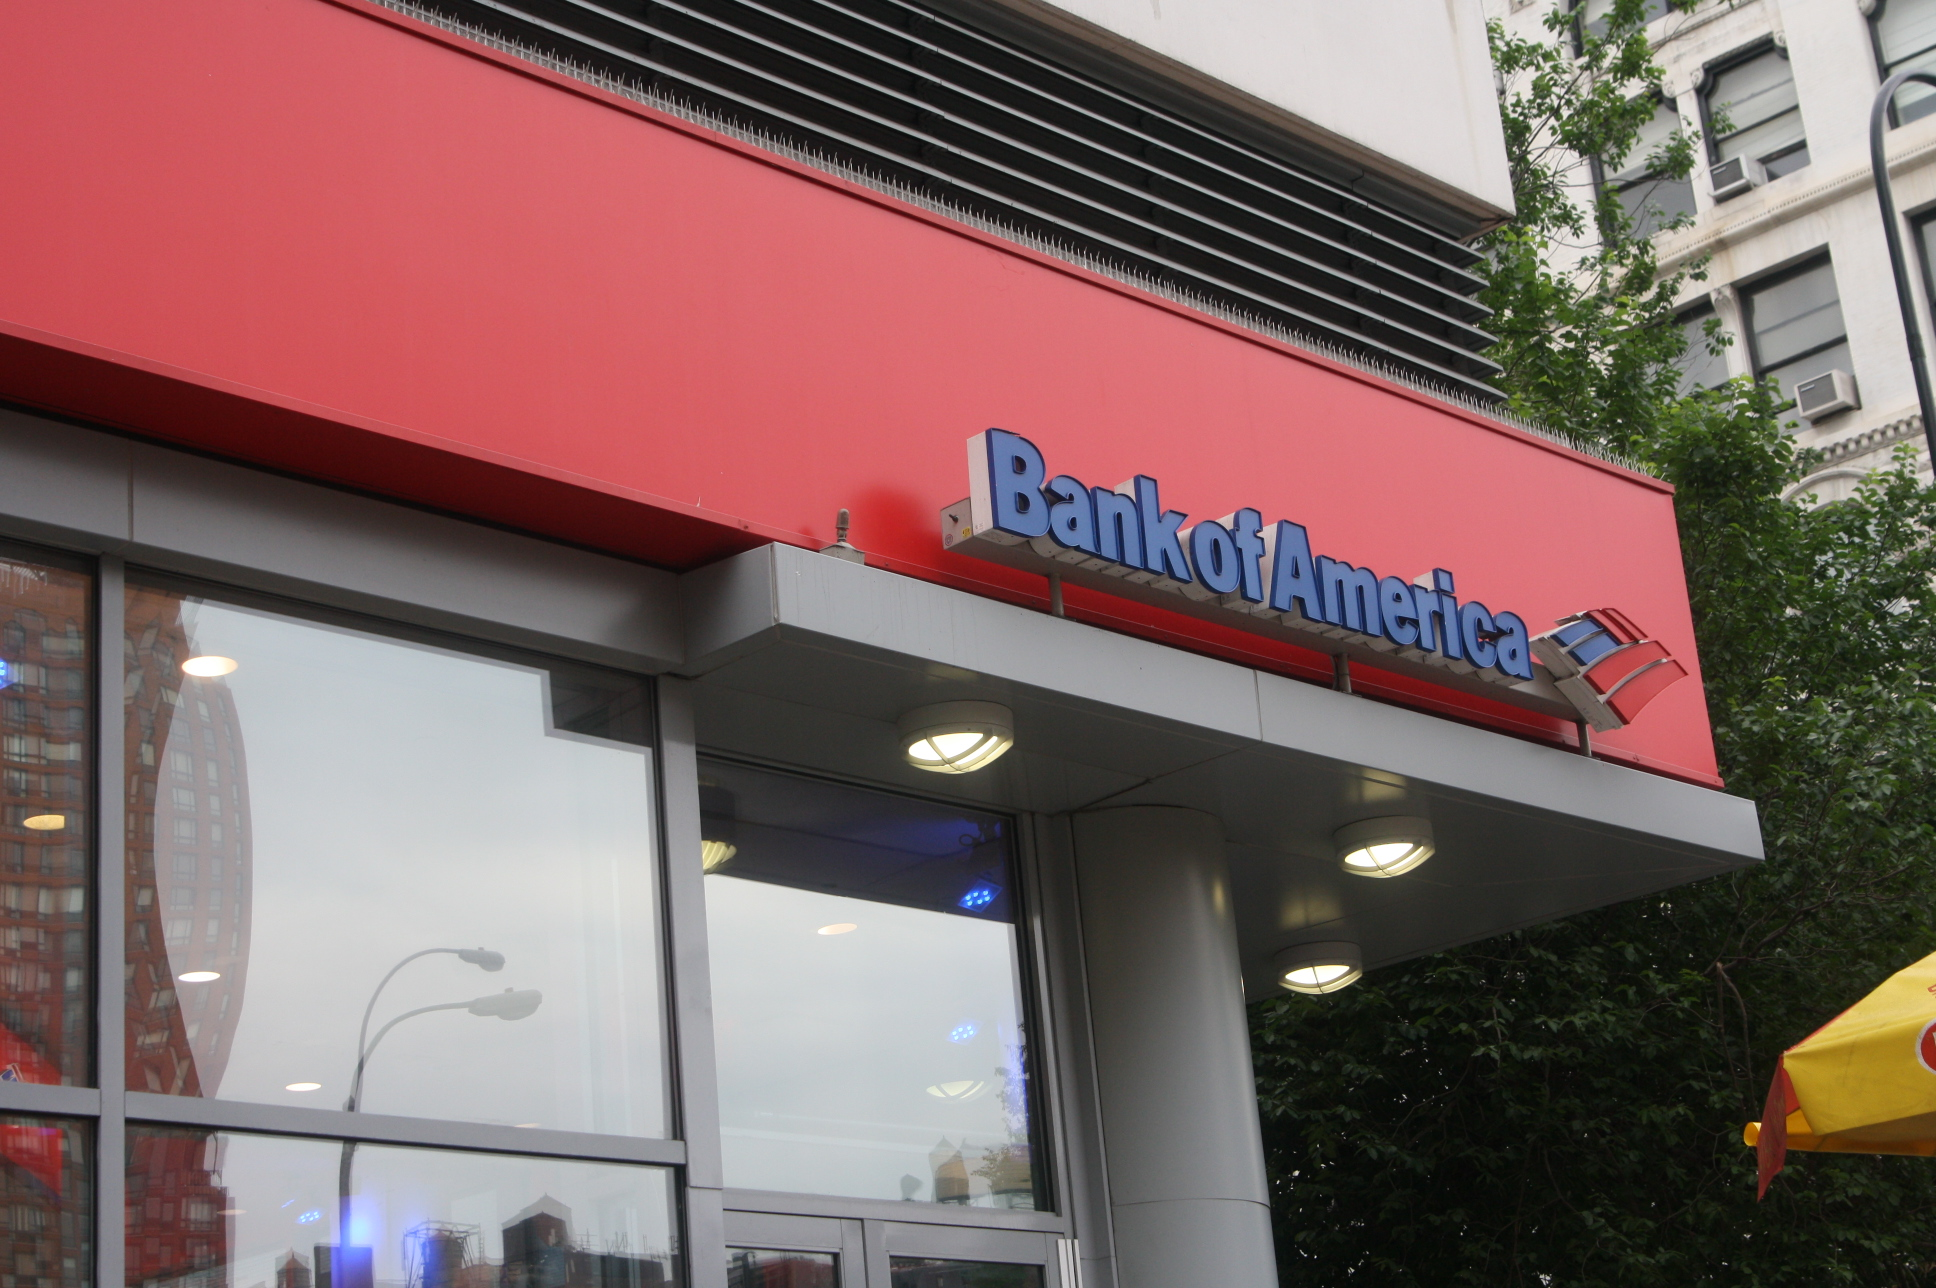 Bank of America branch in union square